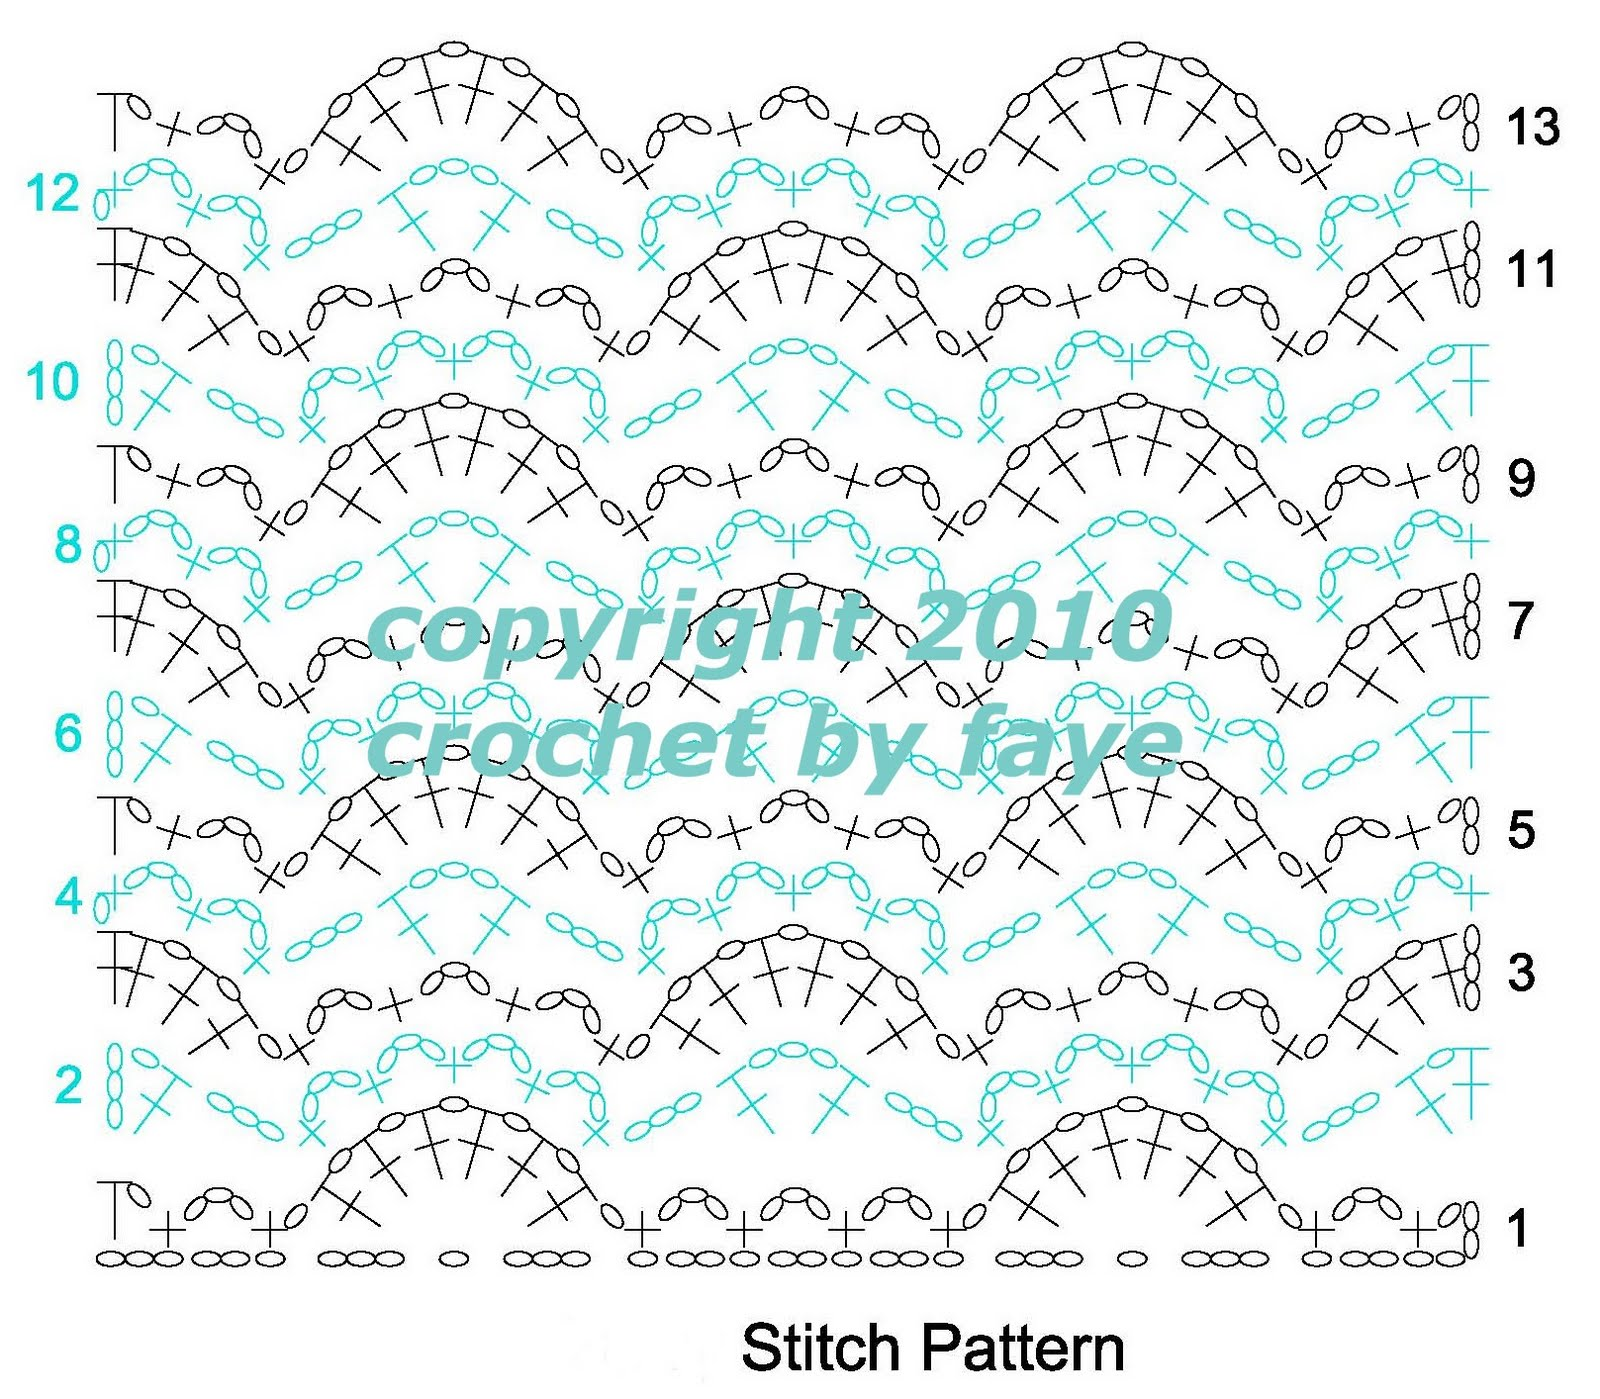 Crochet Patterns Diagram : crochet by faye: Lucine In Diagrams